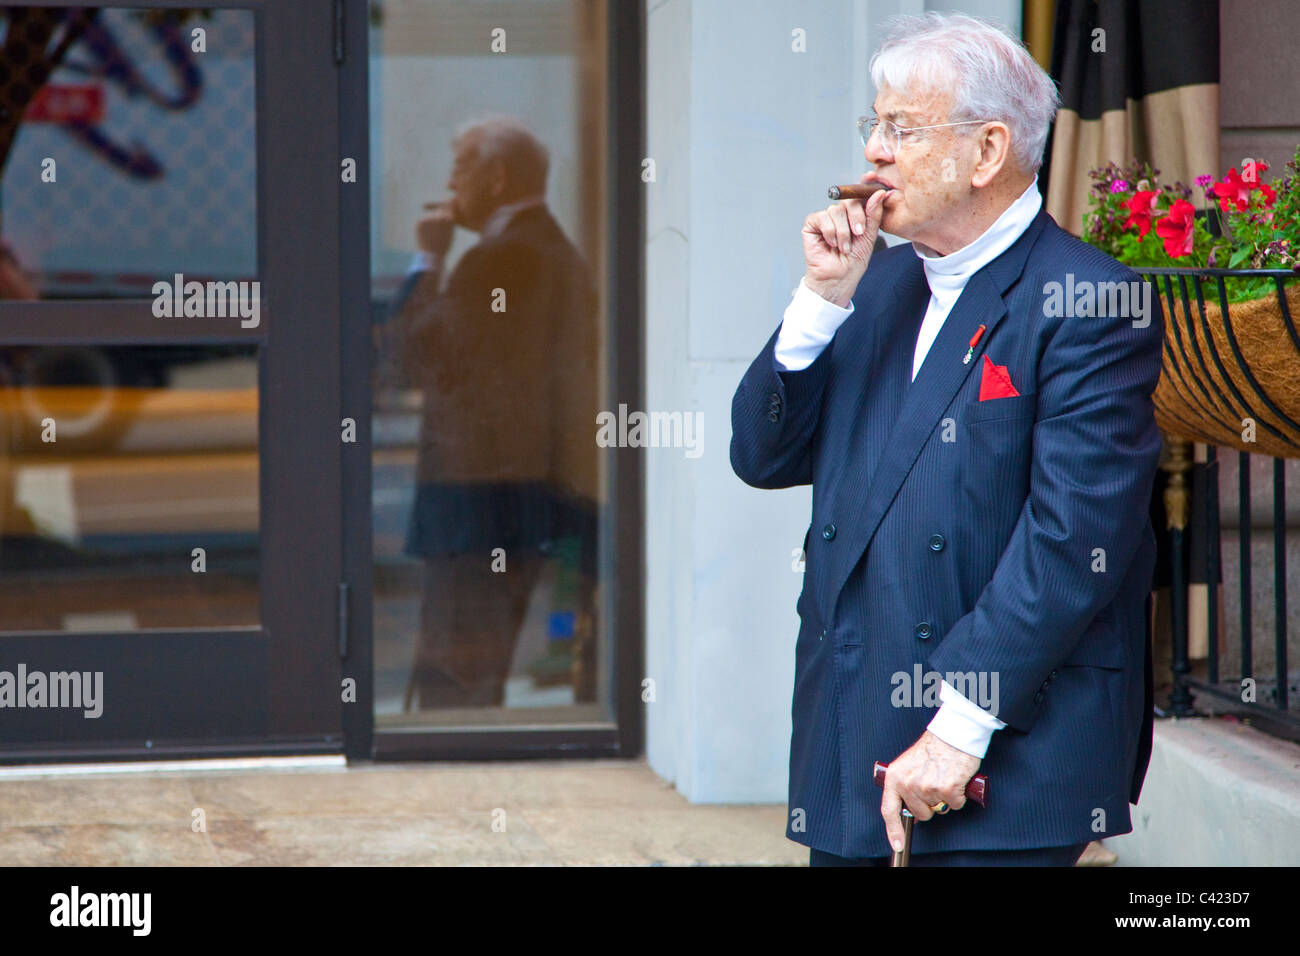 Wealthy elderly man in Washington DC - Stock Image